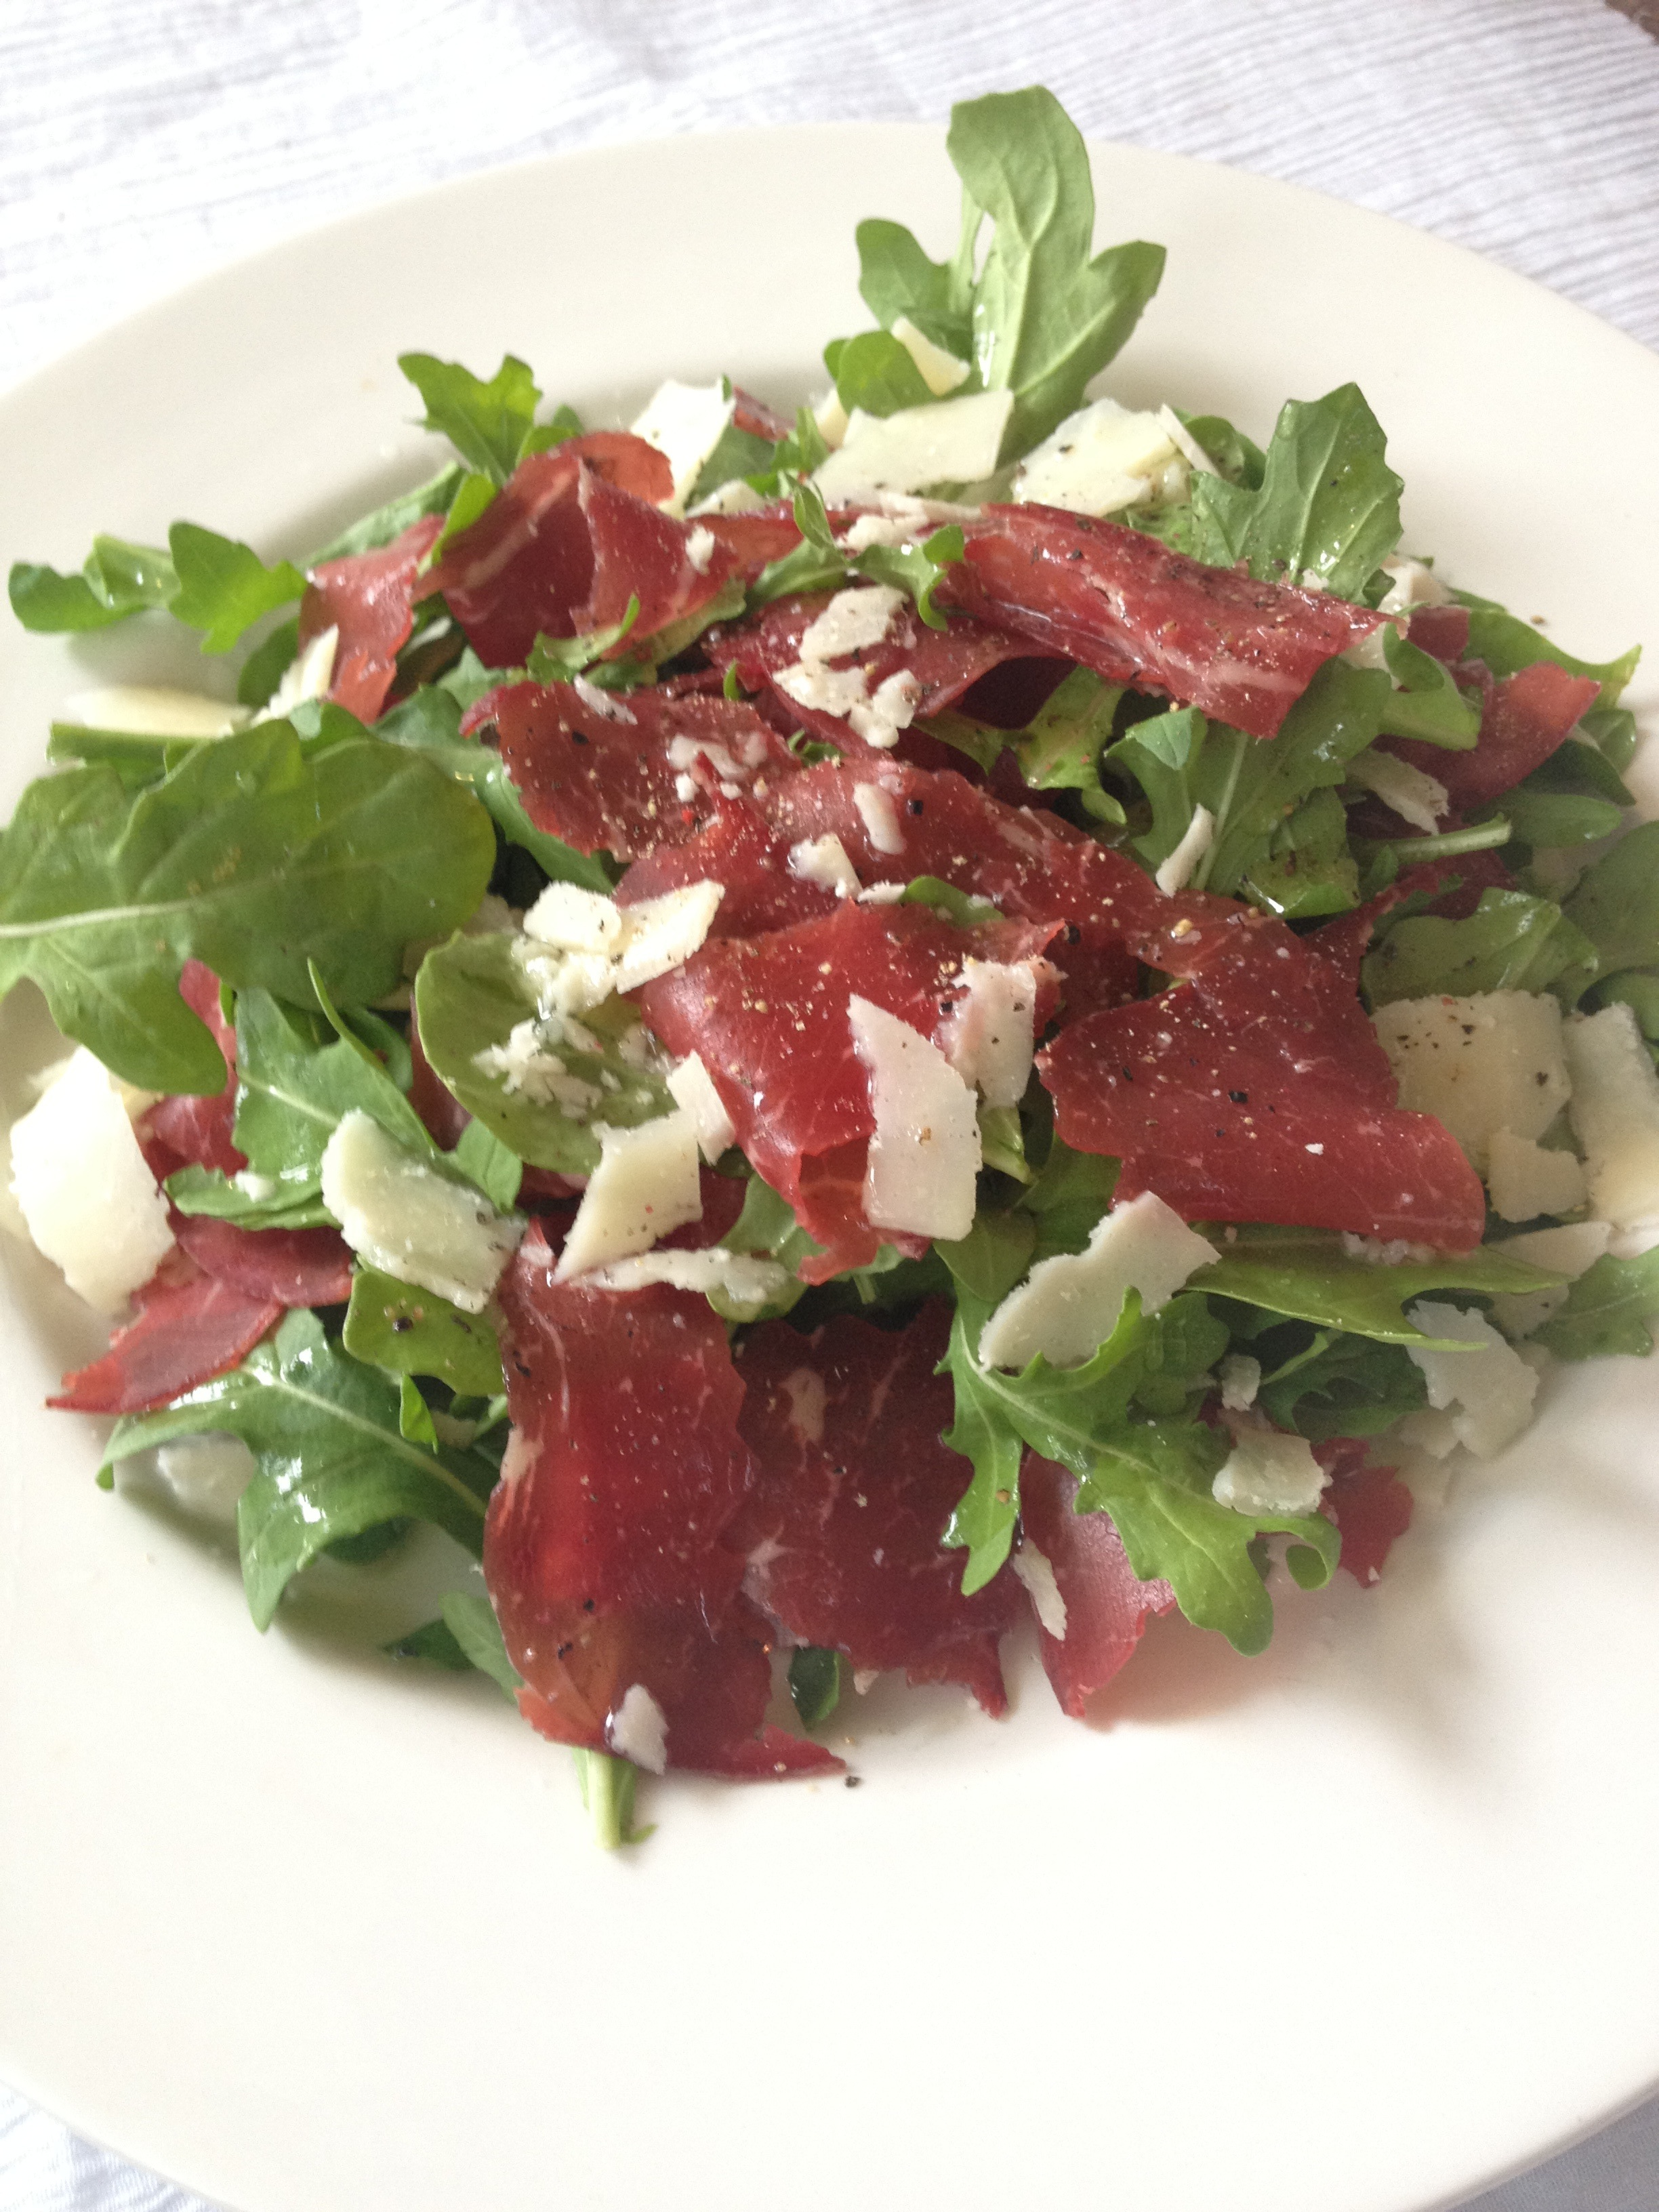 BRESAOLA a sensible habit